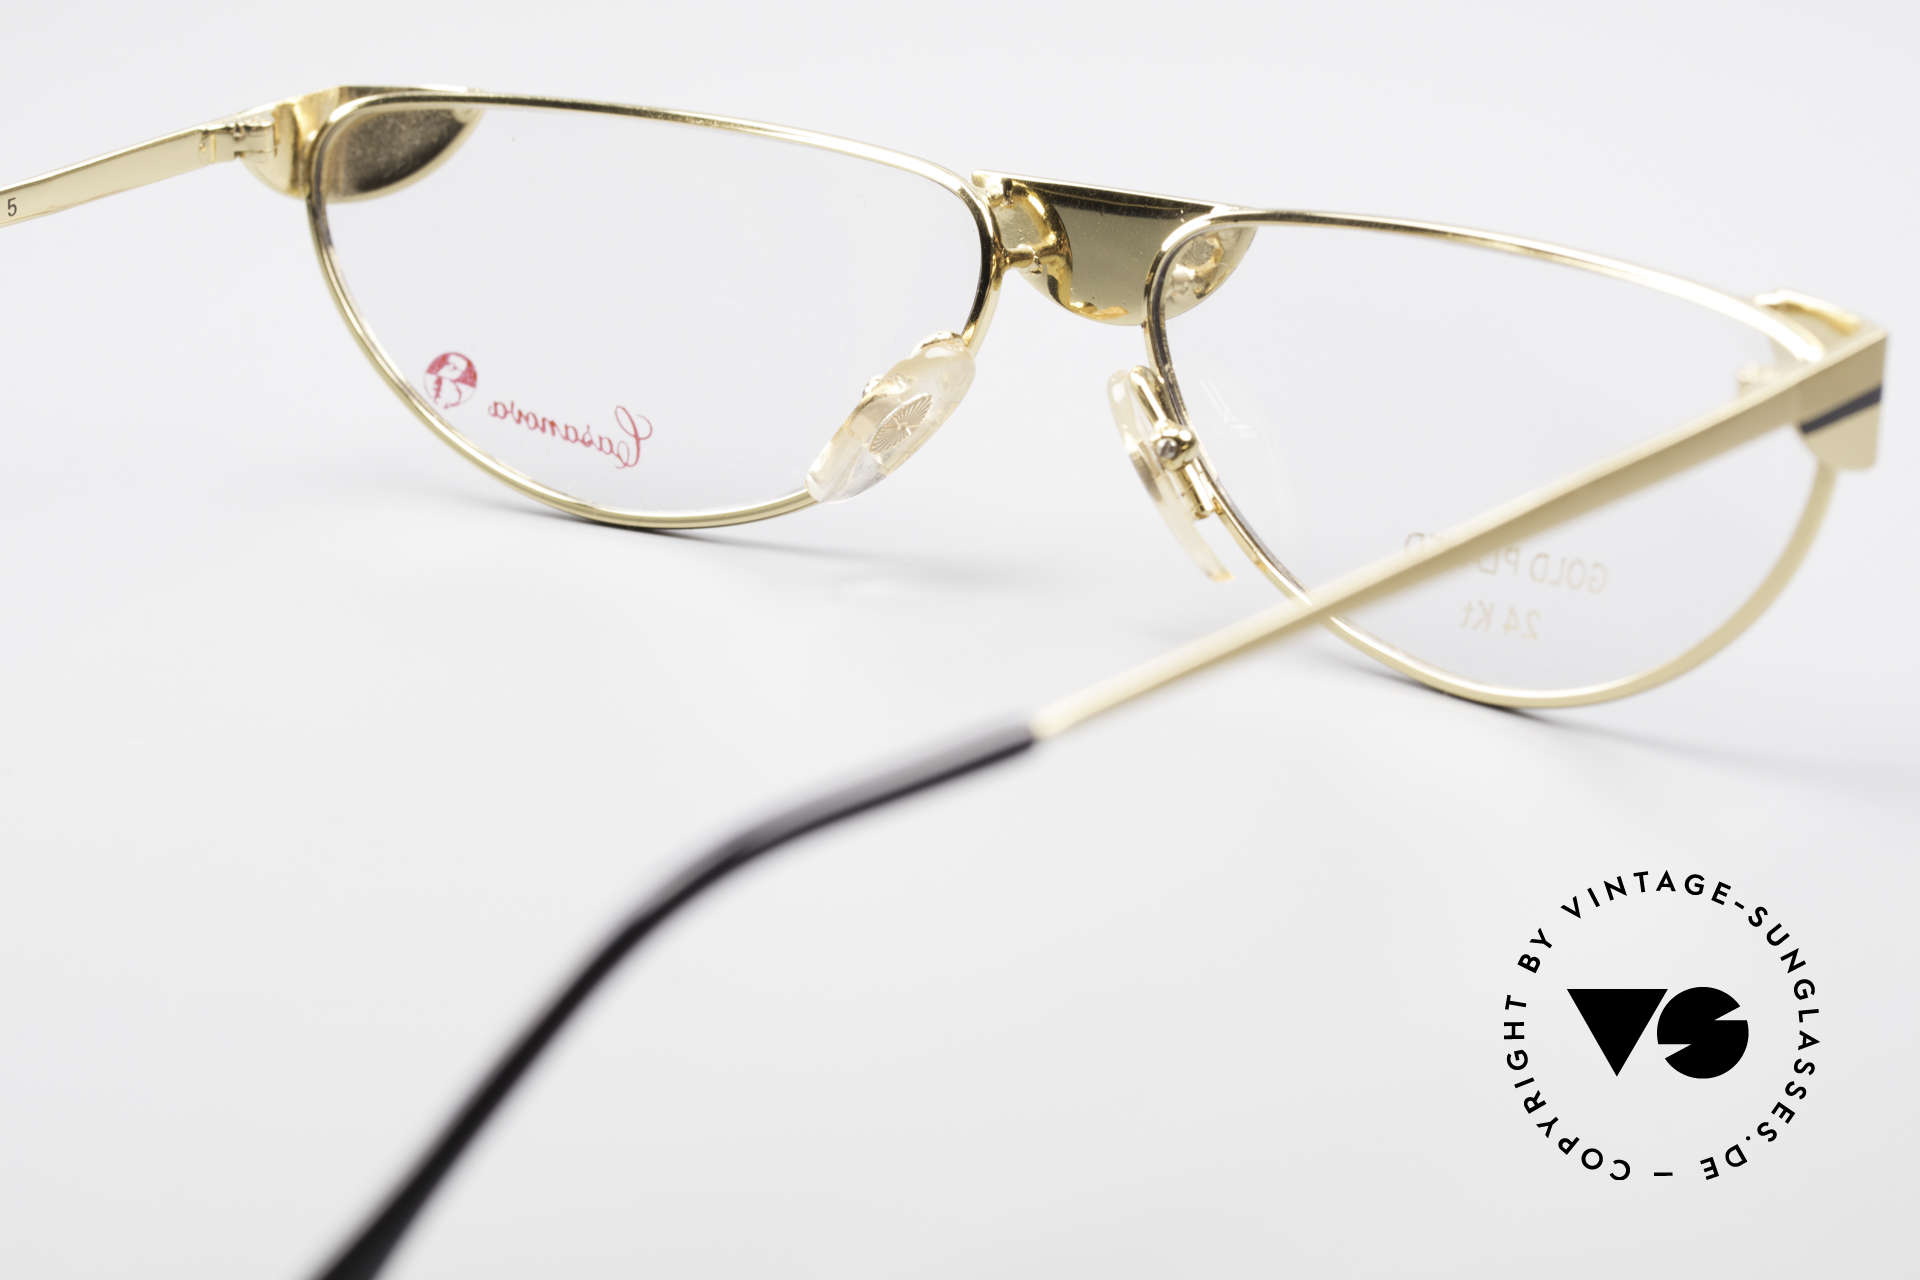 Casanova NM5 Gold Plated Reading Glasses, meanwhile, a collector's item, worldwide (true vintage), Made for Men and Women